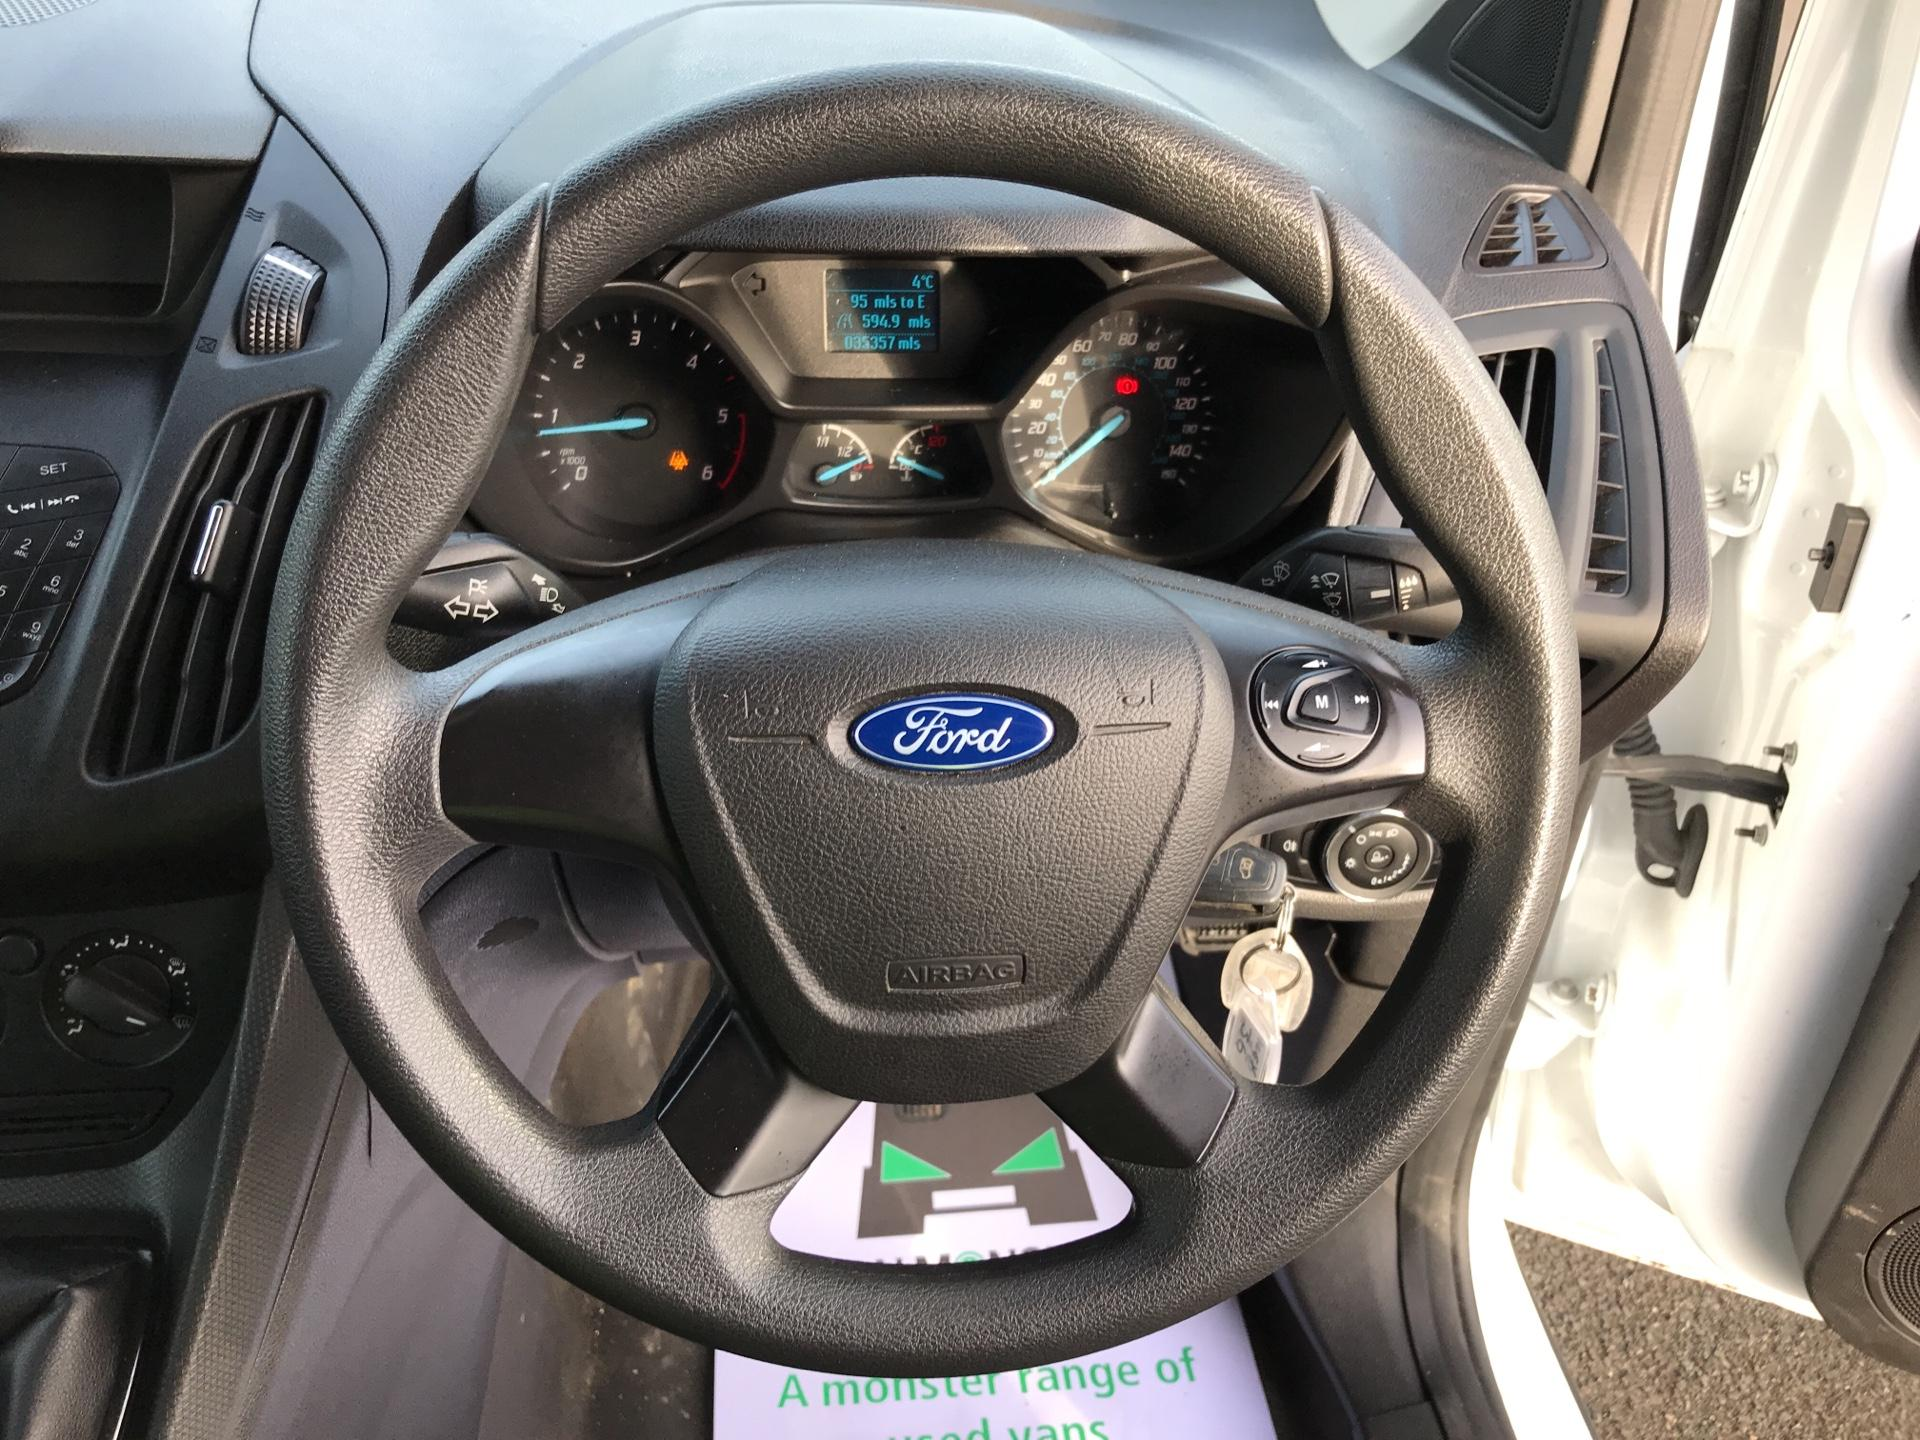 2016 Ford Transit Connect 220 L1 DIESEL 1.5 TDCi 75PS VAN EURO 6 EURO 6 (FH16KNM) Image 12